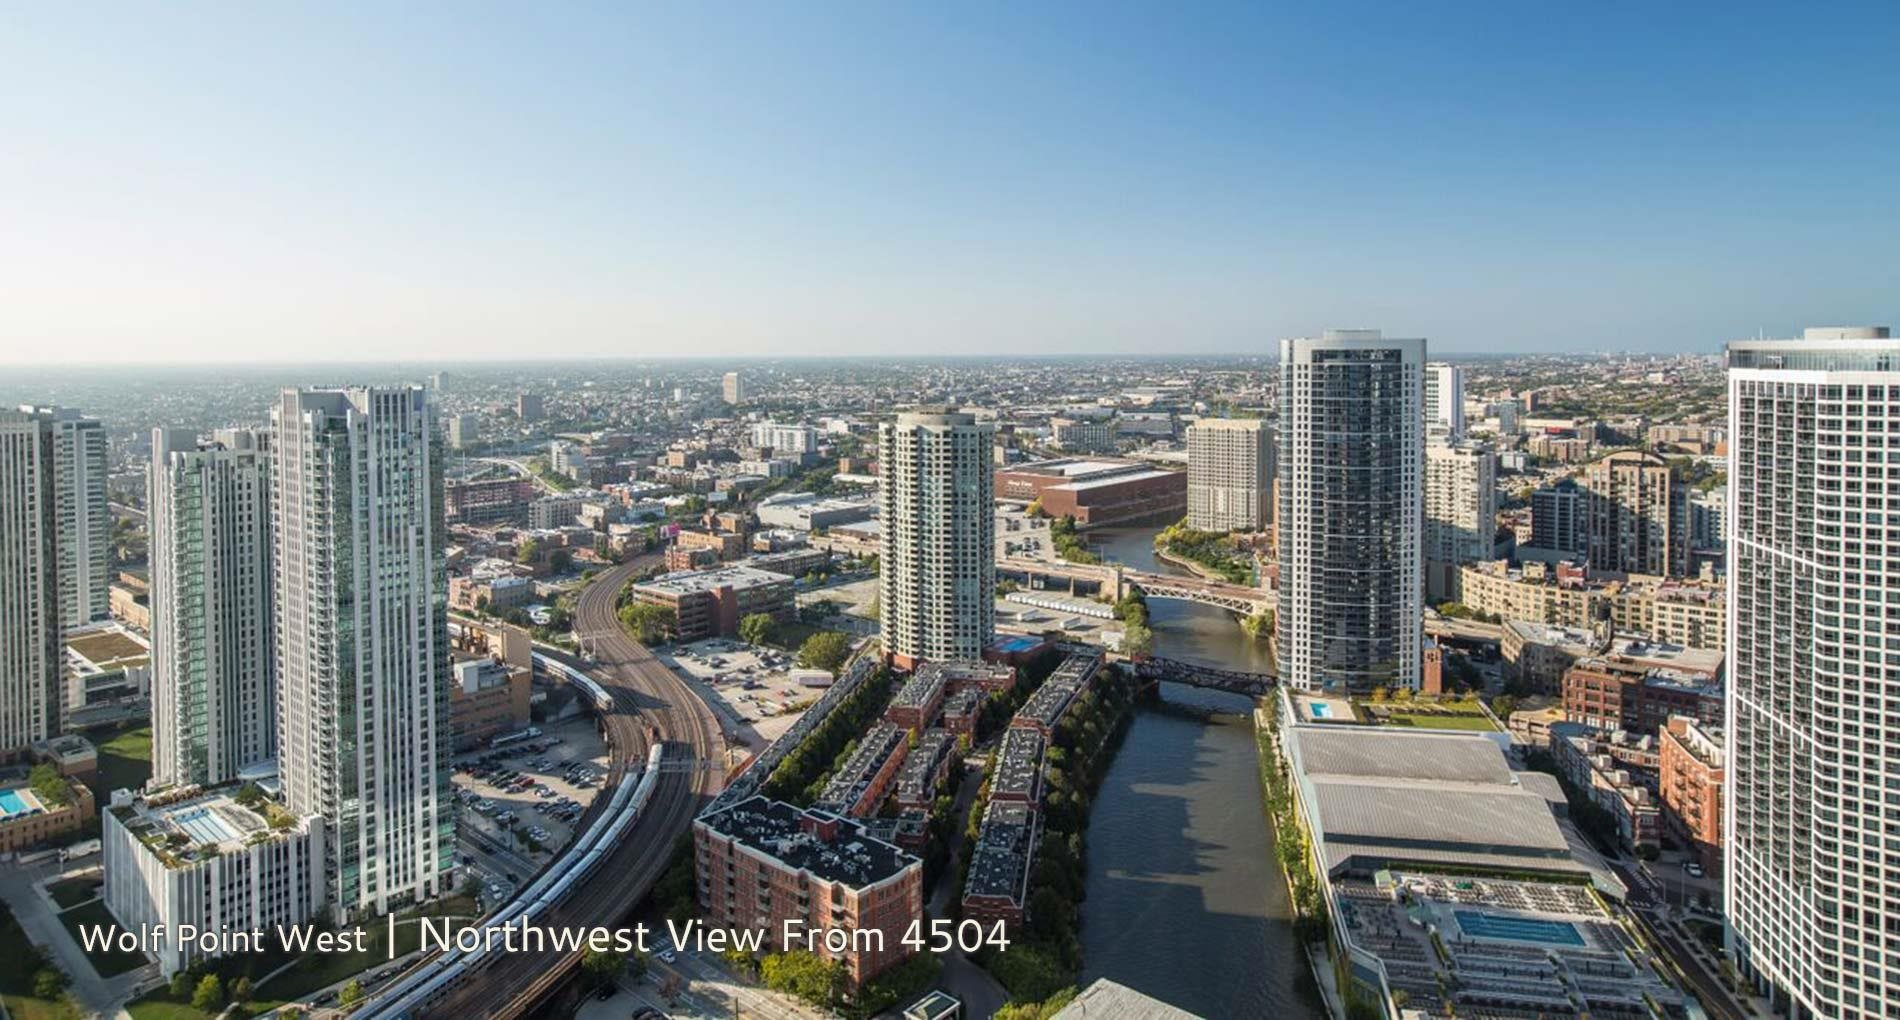 Wolf Point West | Northwest View From 4504